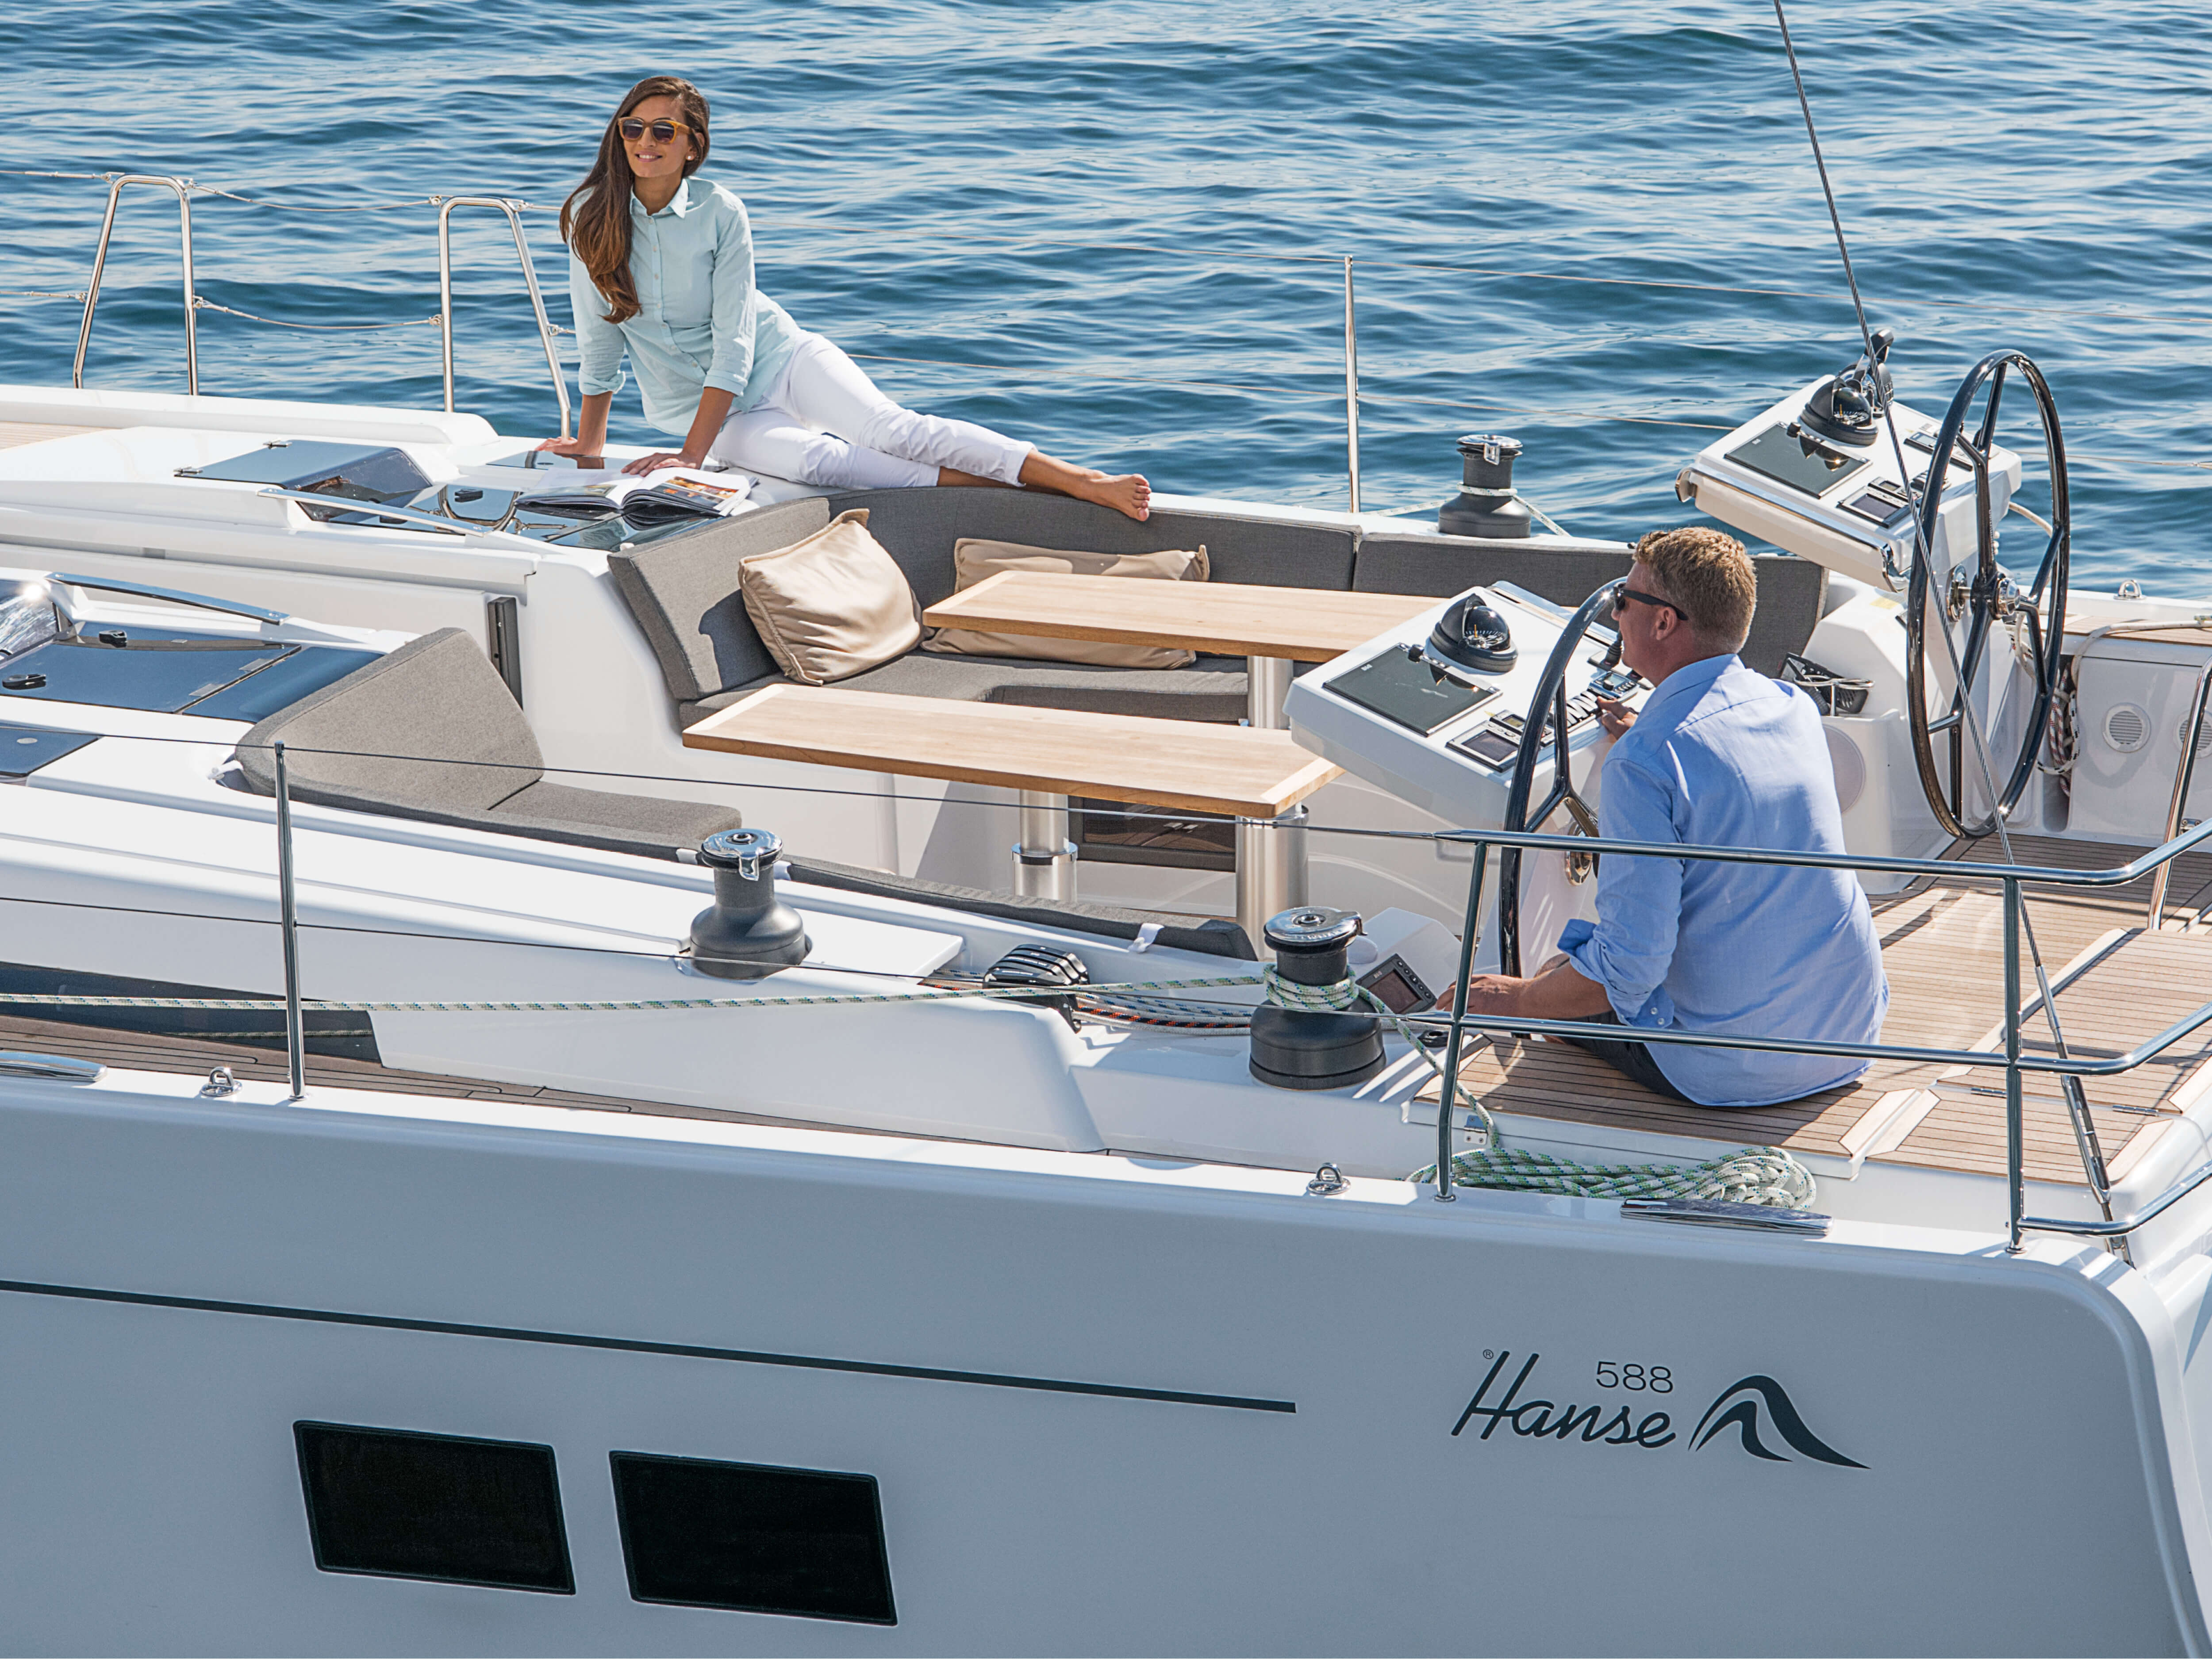 Hanse 588 Exterior Sailing | cockpit, cockpit table, case stopper, winches, multi-function display | Hanse